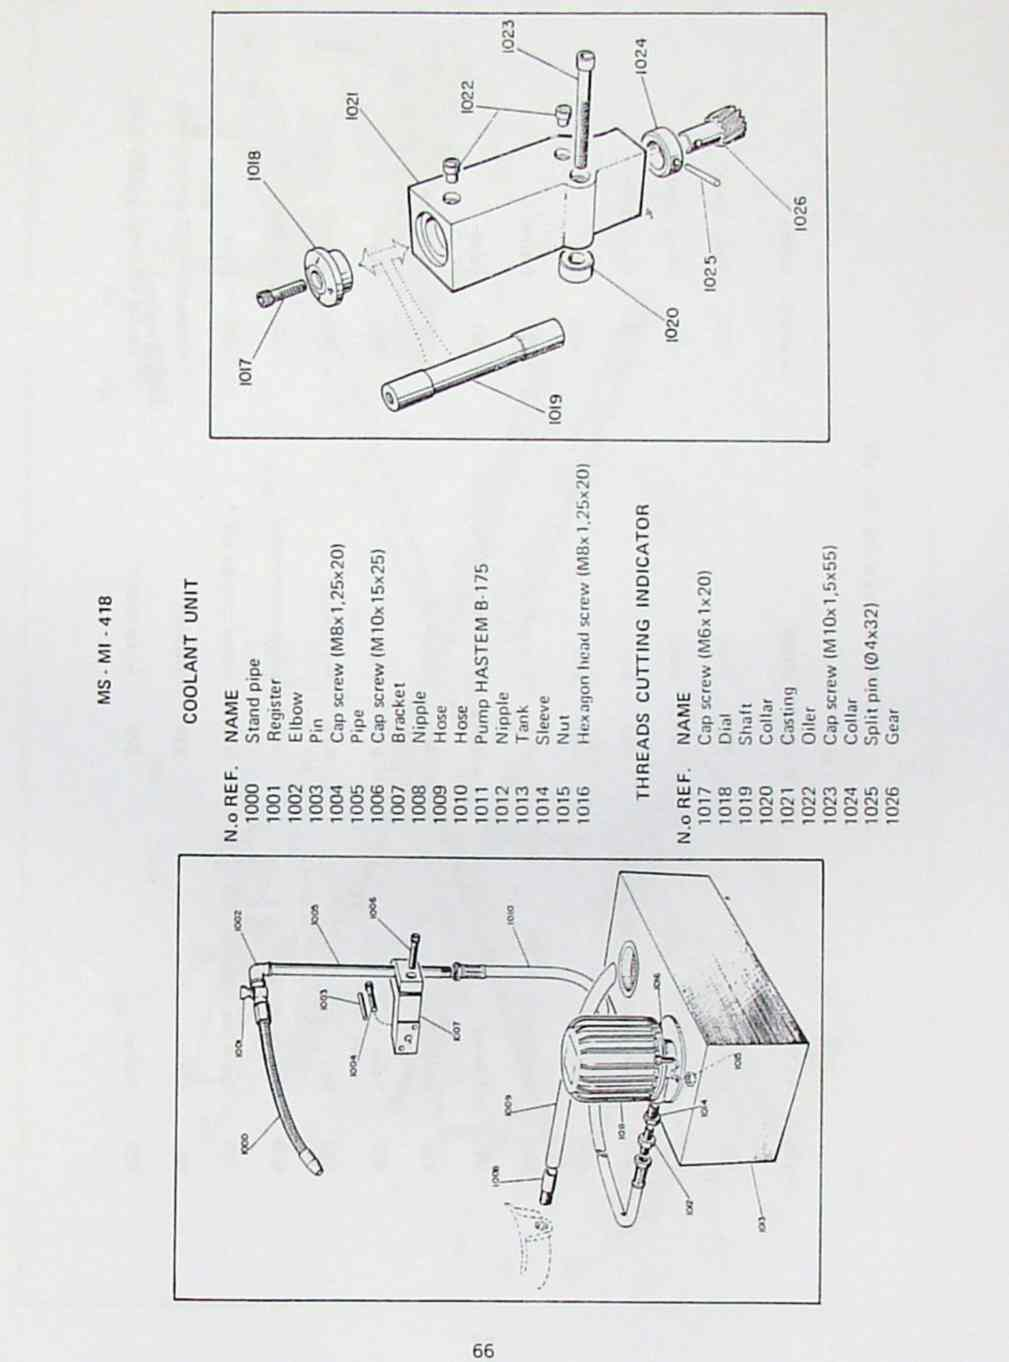 NARDINI MS-1440, 1640 S-E Mascote Lathe Part Manual